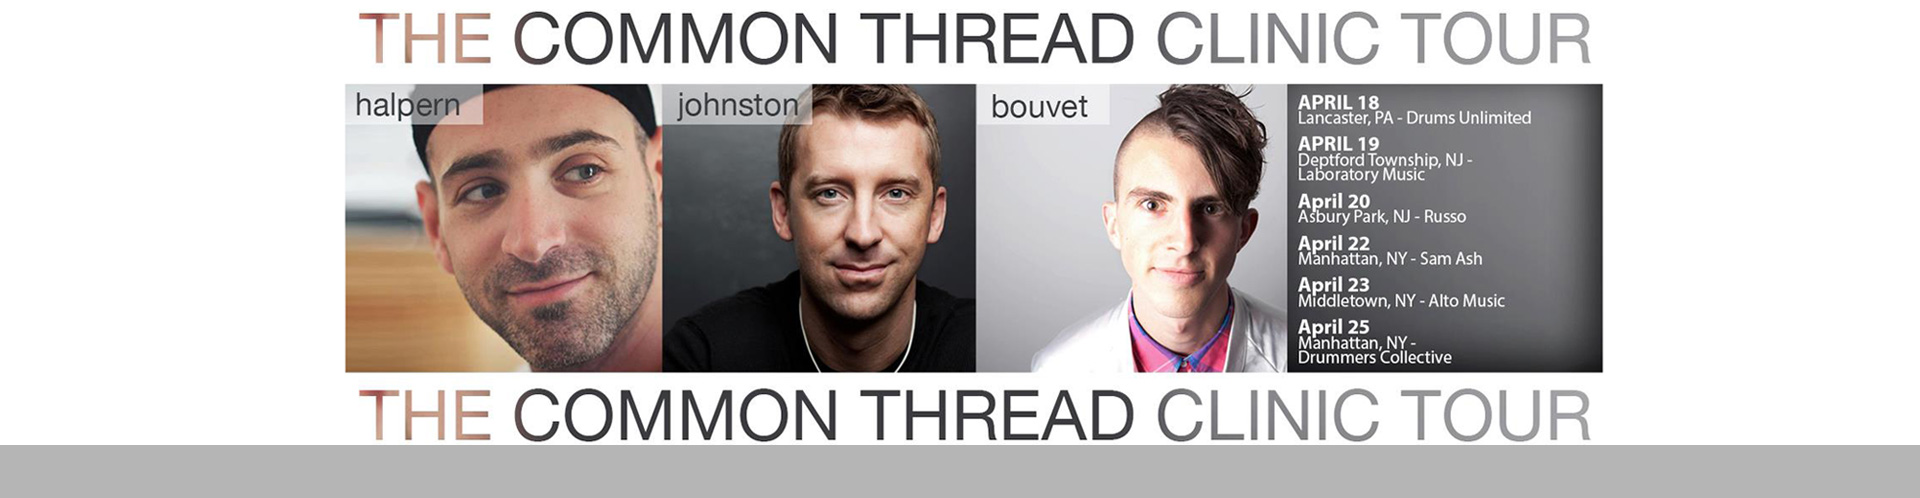 Common Thread Clinic Tour